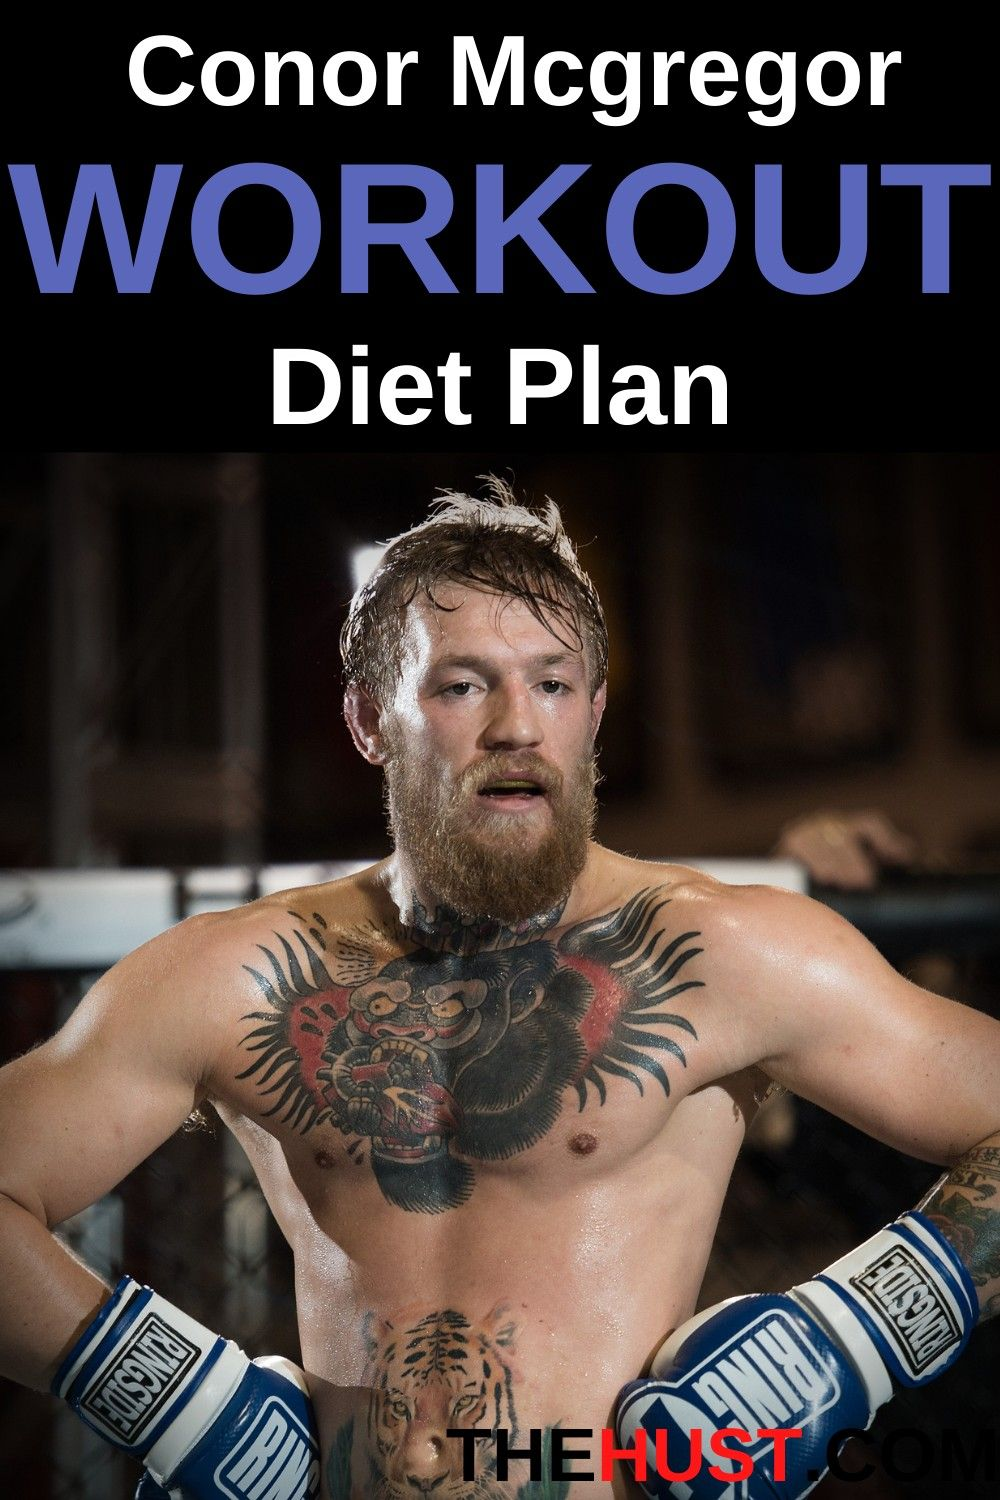 Conor Mcgregor Complete Workout And Diet Plan In 2021 Workout Diet Plan Men S Health Fitness Endurance Workout